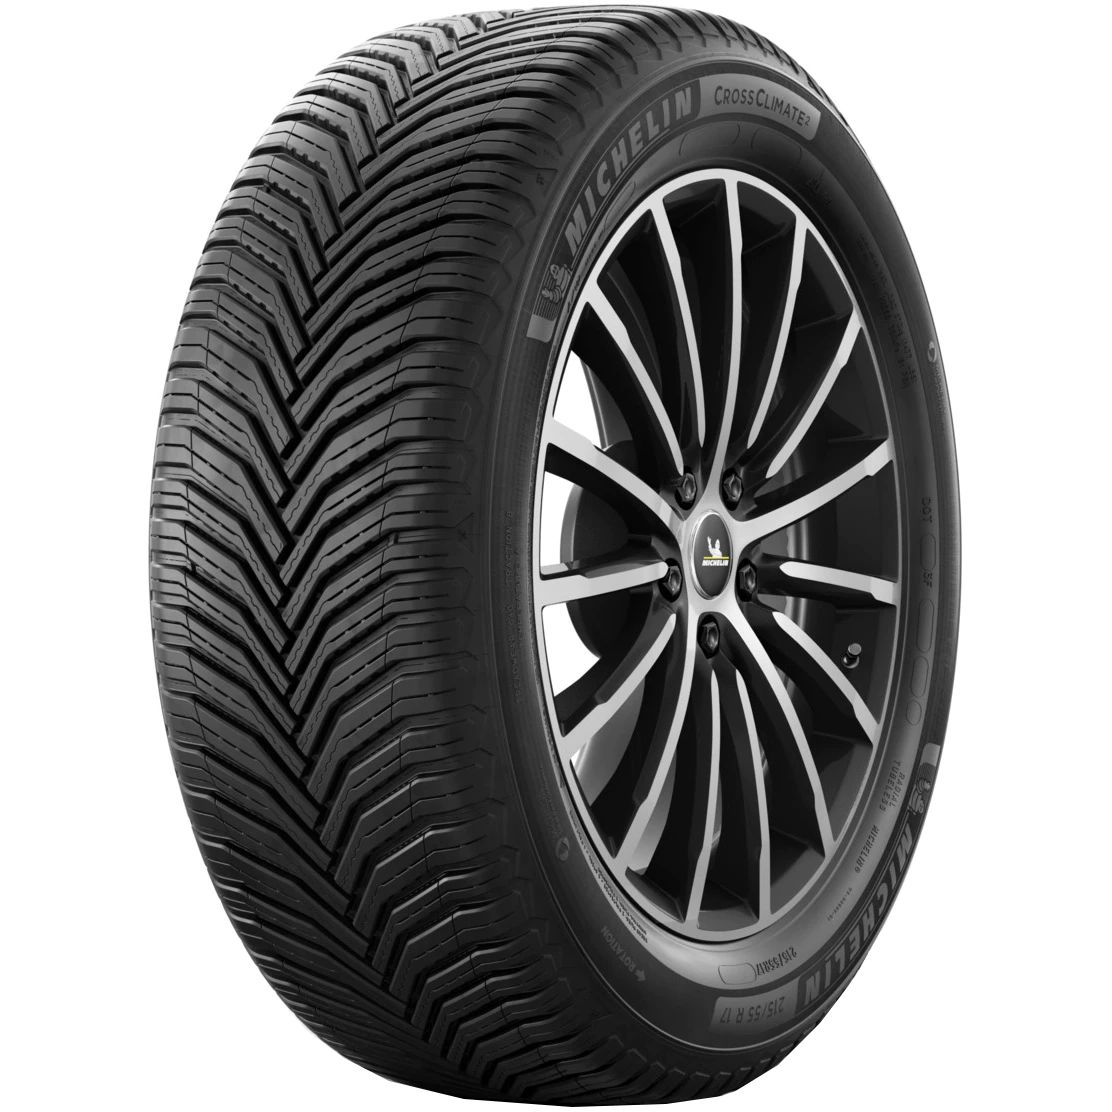 Anvelope all seasons 195/65 R15 Michelin CrossClimate2 M+S